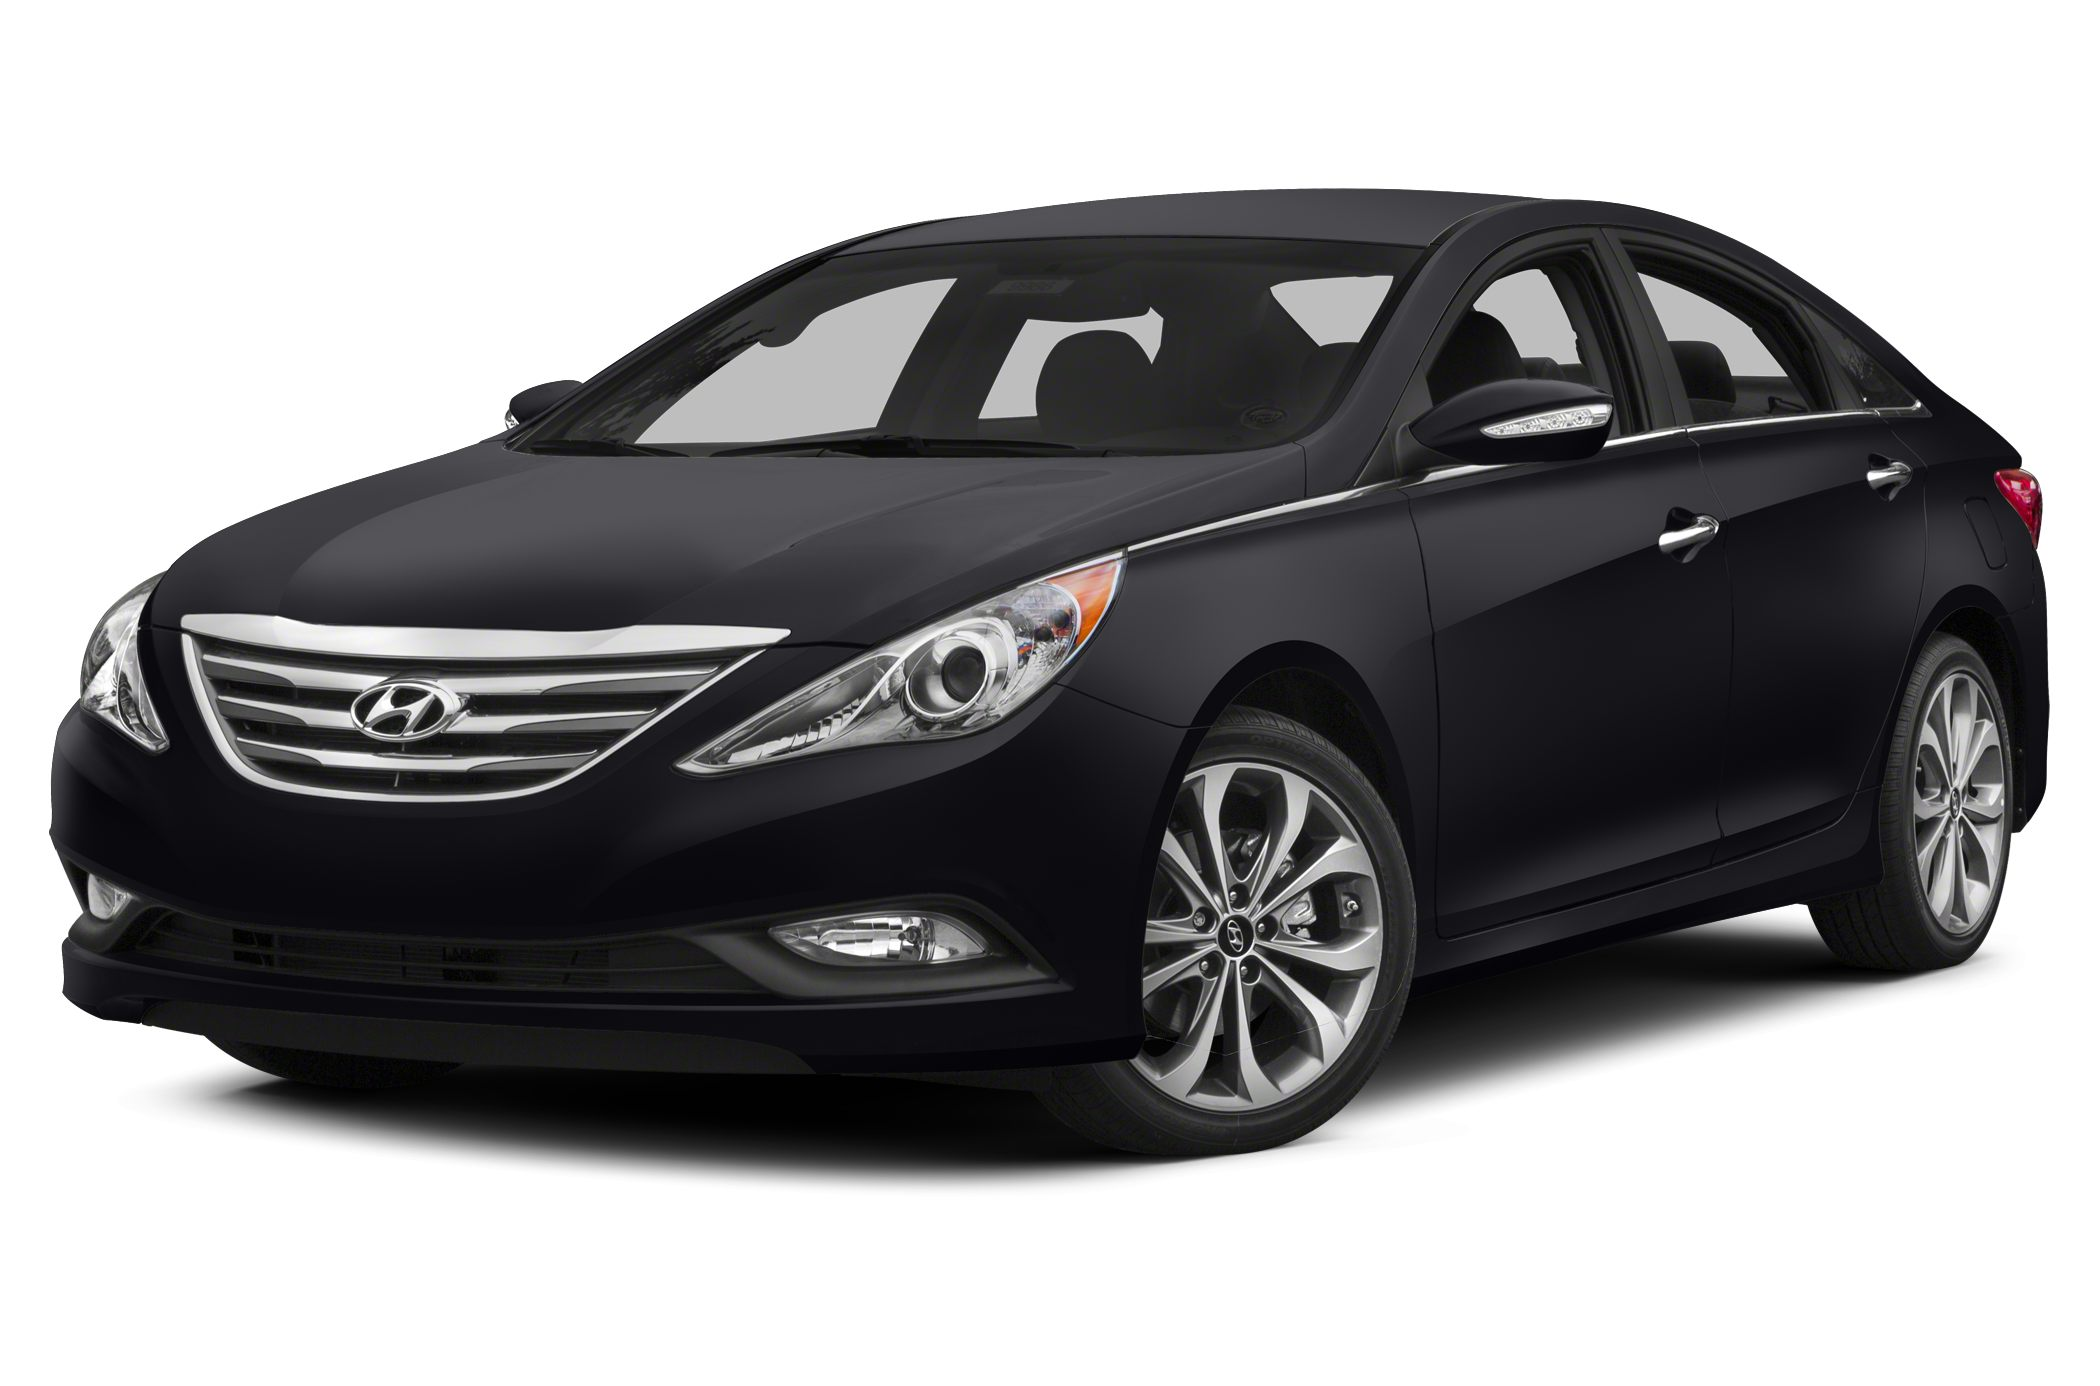 Hyundai Sonata Gls >> 2014 Hyundai Sonata Gls 4dr Sedan Specs And Prices